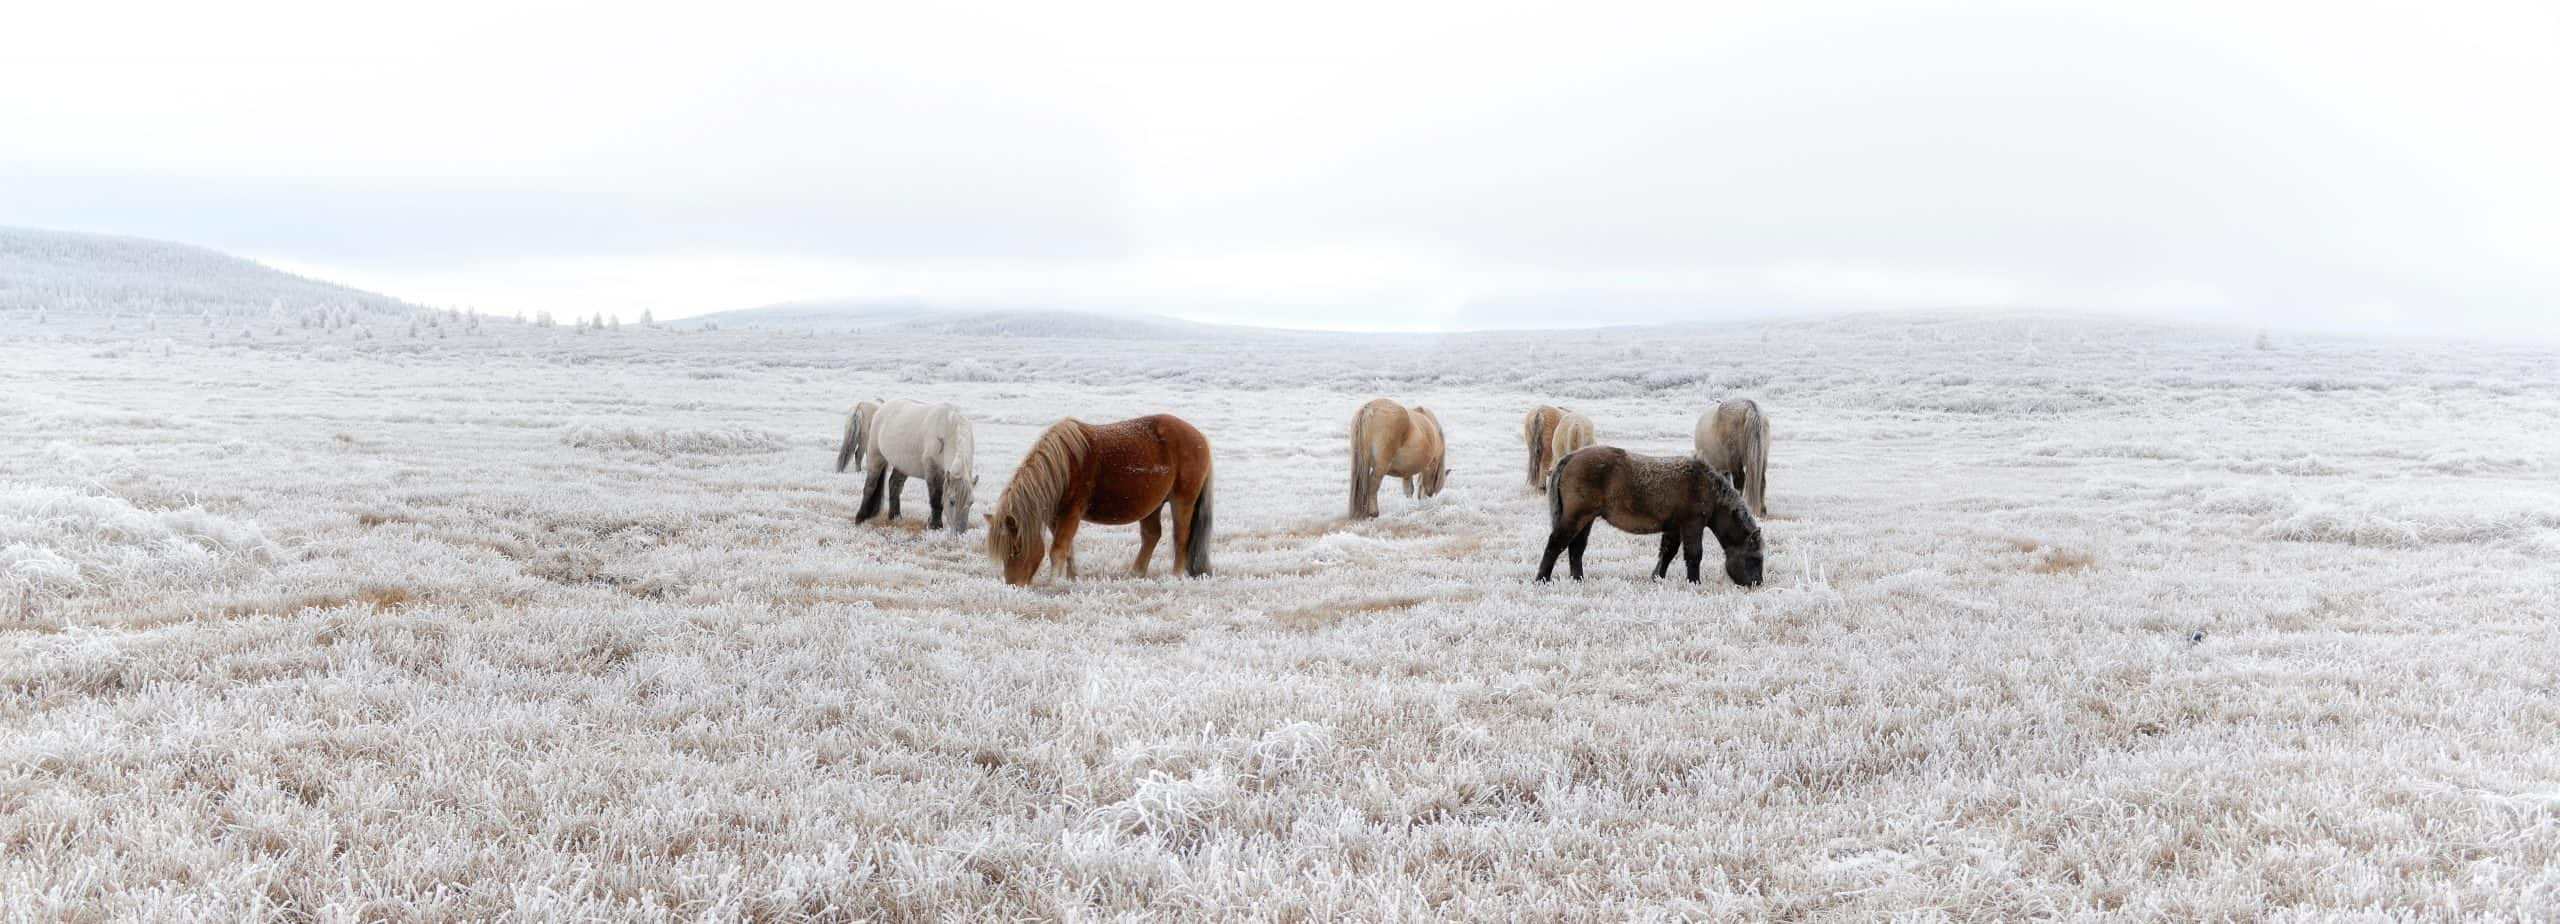 The Yakutian horse Yakut: ???? ???, Sakha ata, sometimes called the Yakut horse, Yakut pony or simply the Yakut, is a rare native horse breed from the Siberian Sakha Republic or Yakutia region. It is large compared to the otherwise similar Mongolian horse and Przewalski`s horse It is noted for its adaptation to the extreme cold climate of Yakutia, including the ability to locate and graze on vegetation that is under deep snow cover, and to survive without shelter in temperatures that reach ?70 °C ?94 °F